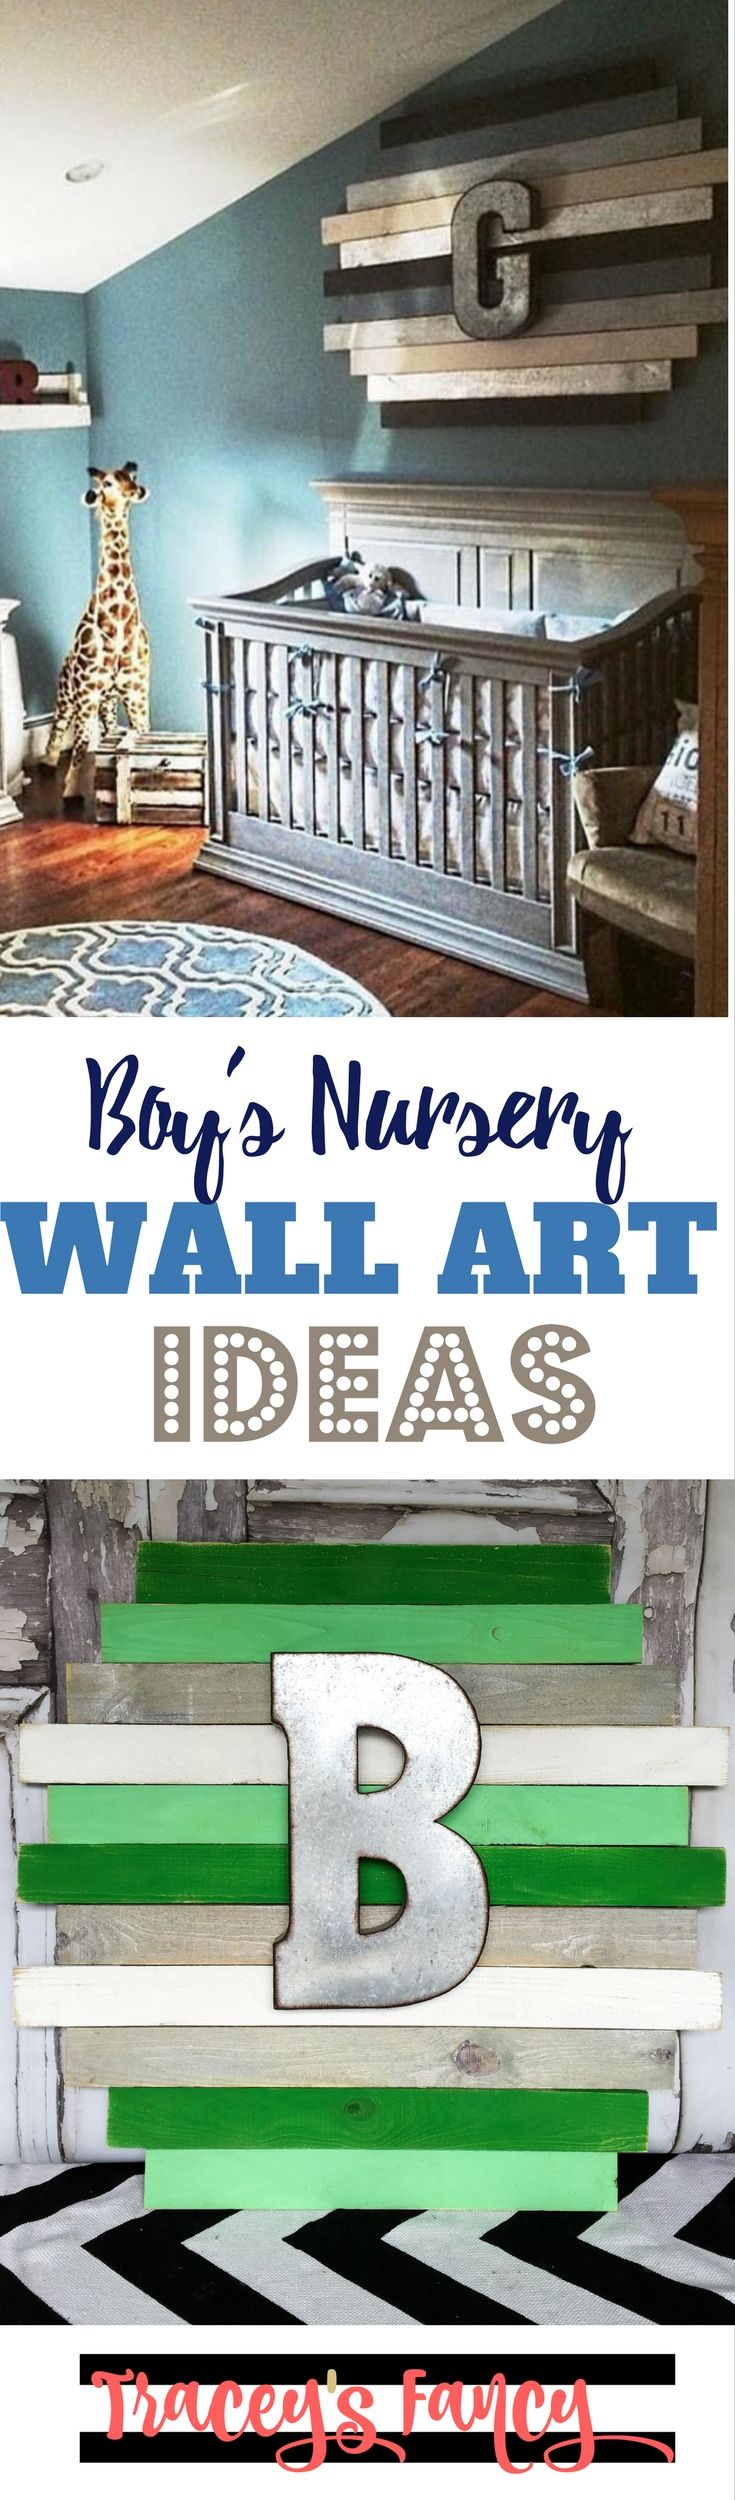 Wonderful Wall Art Ideas | Tracey's Fancy